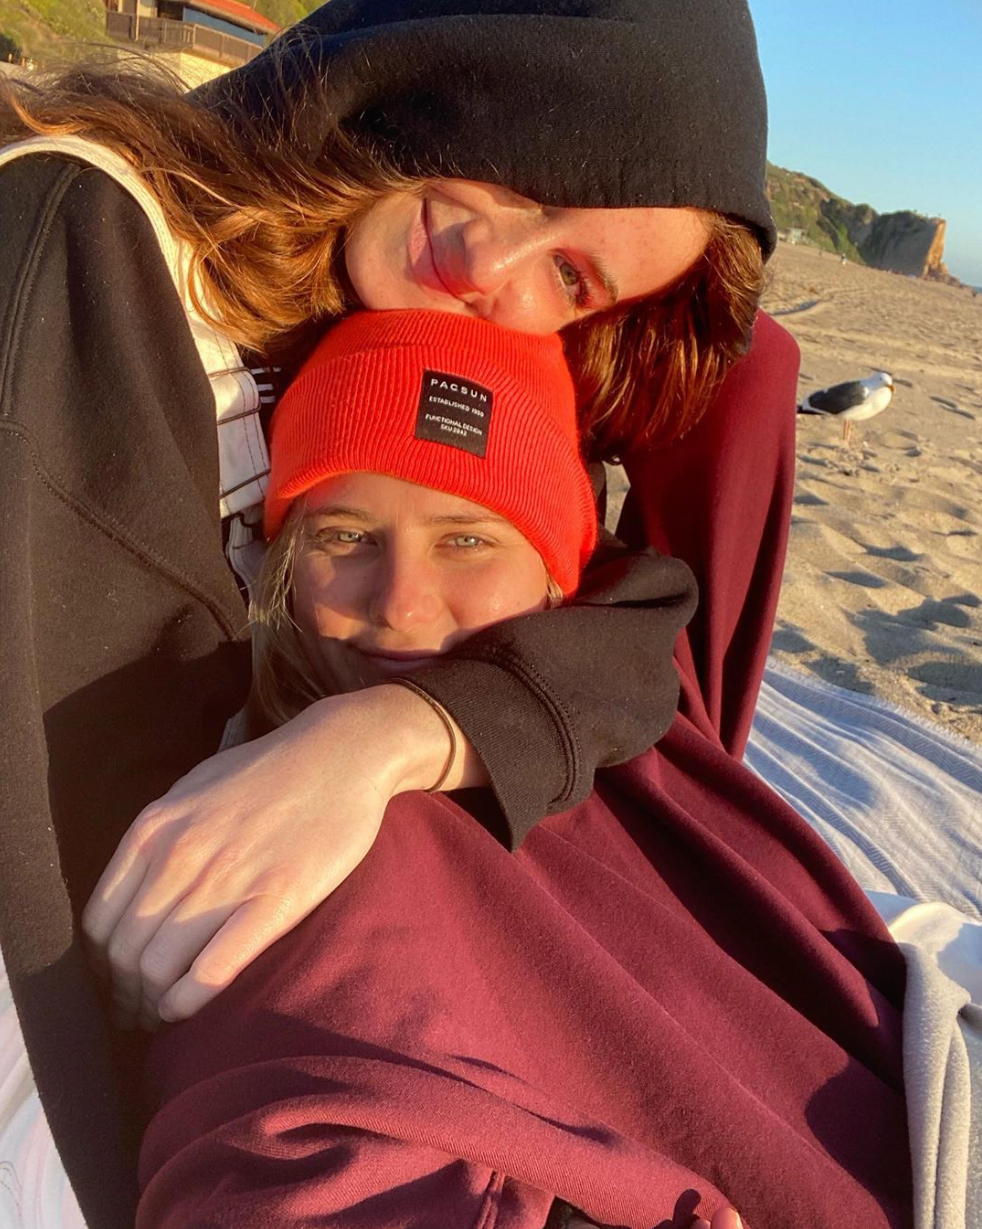 Kristian-Haggerty-Gushes-Over-'Amazing'-New-GF-Taylor-Blake